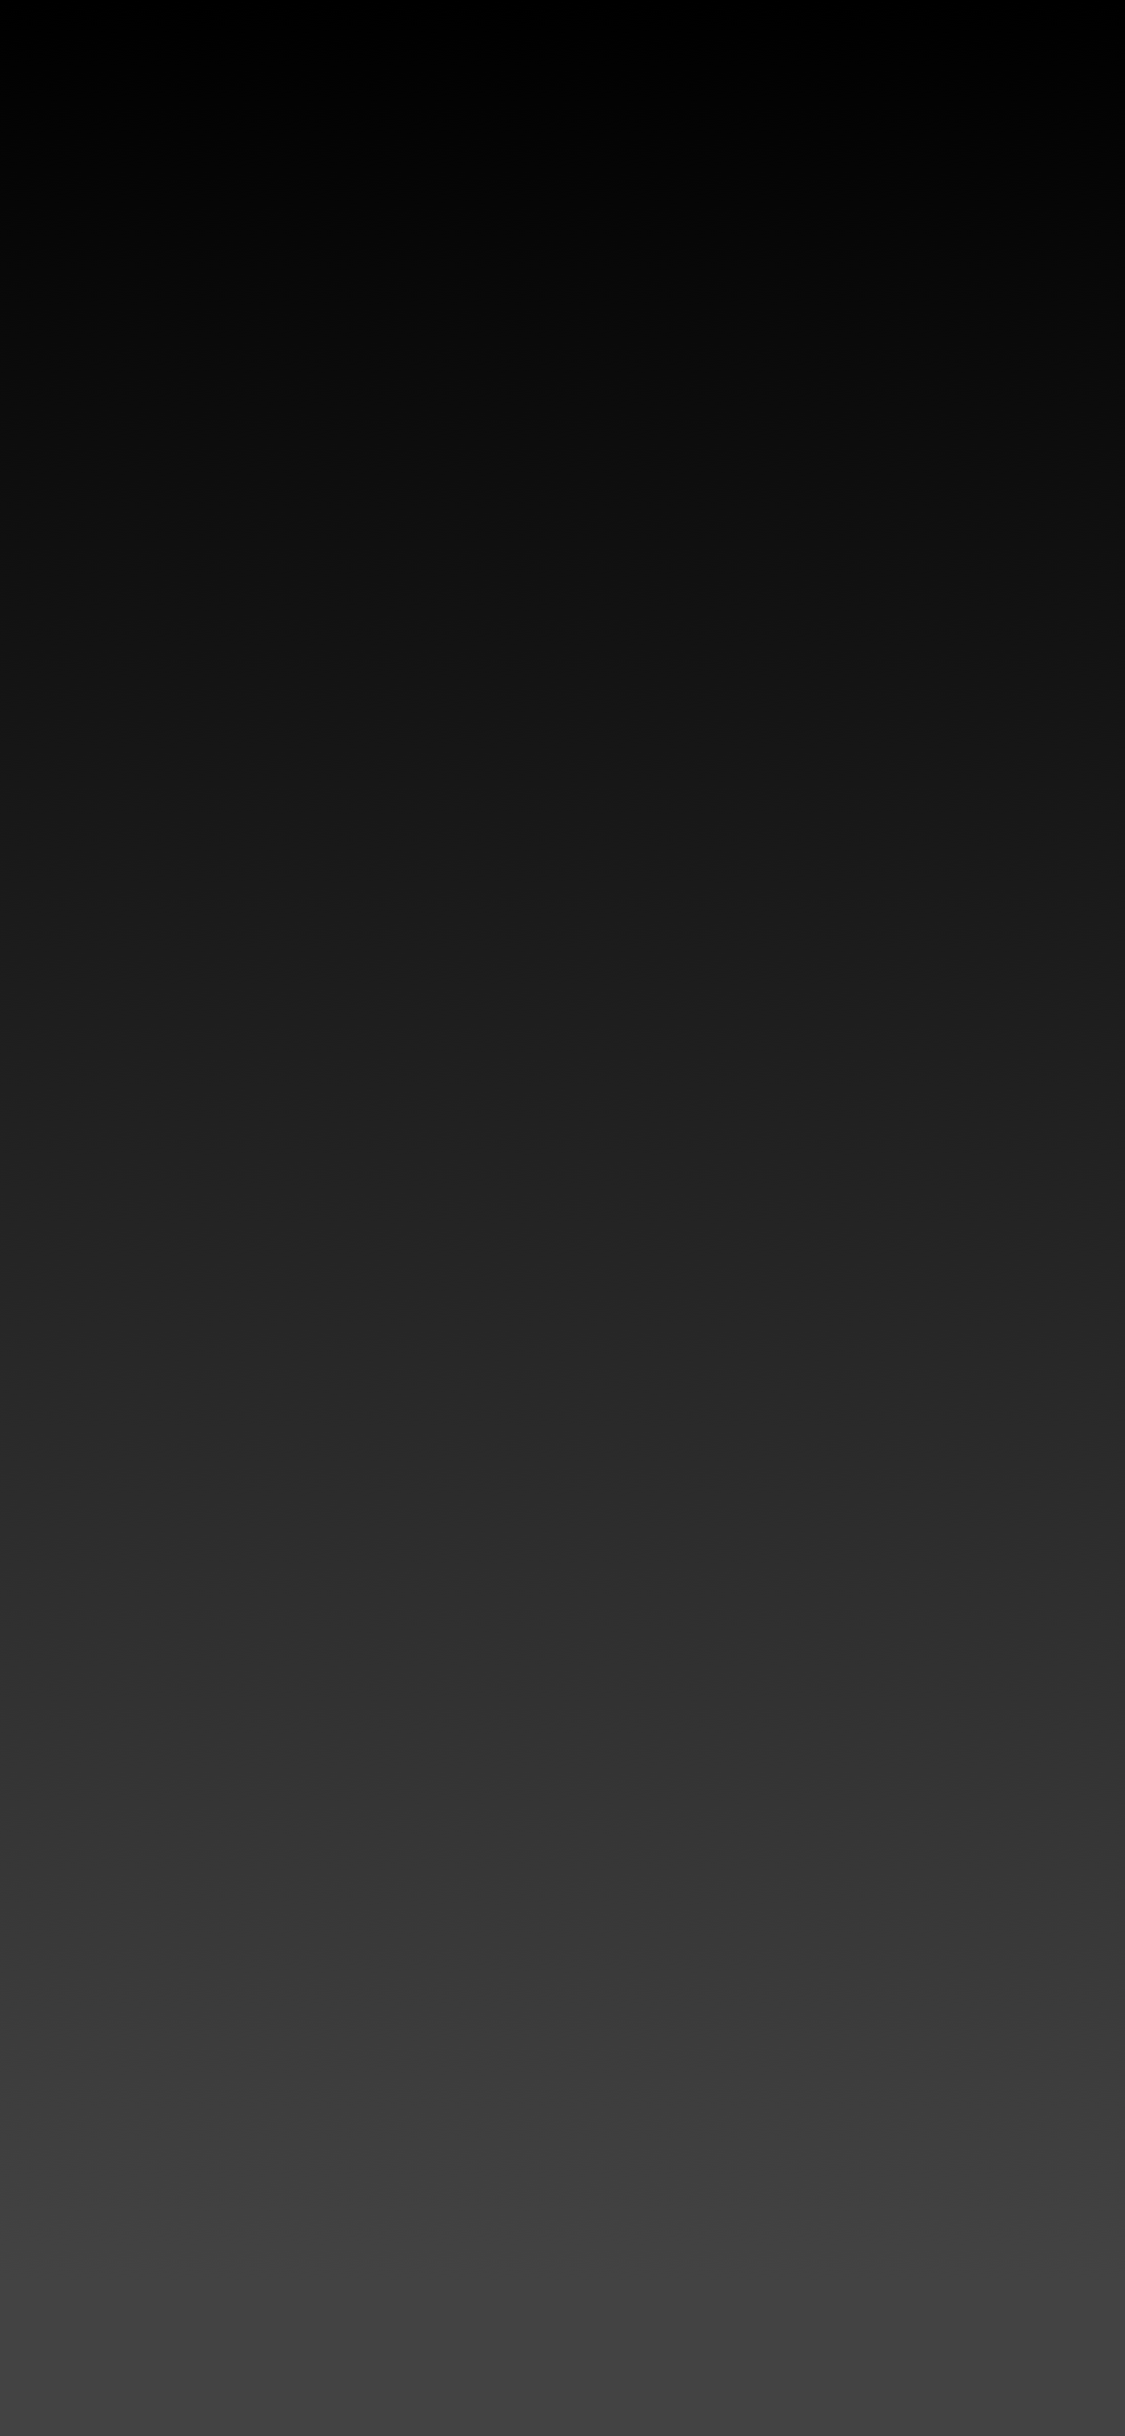 Black Notch Iphone X Wallpaper Notchless Gradient Wallpapers For Iphone X